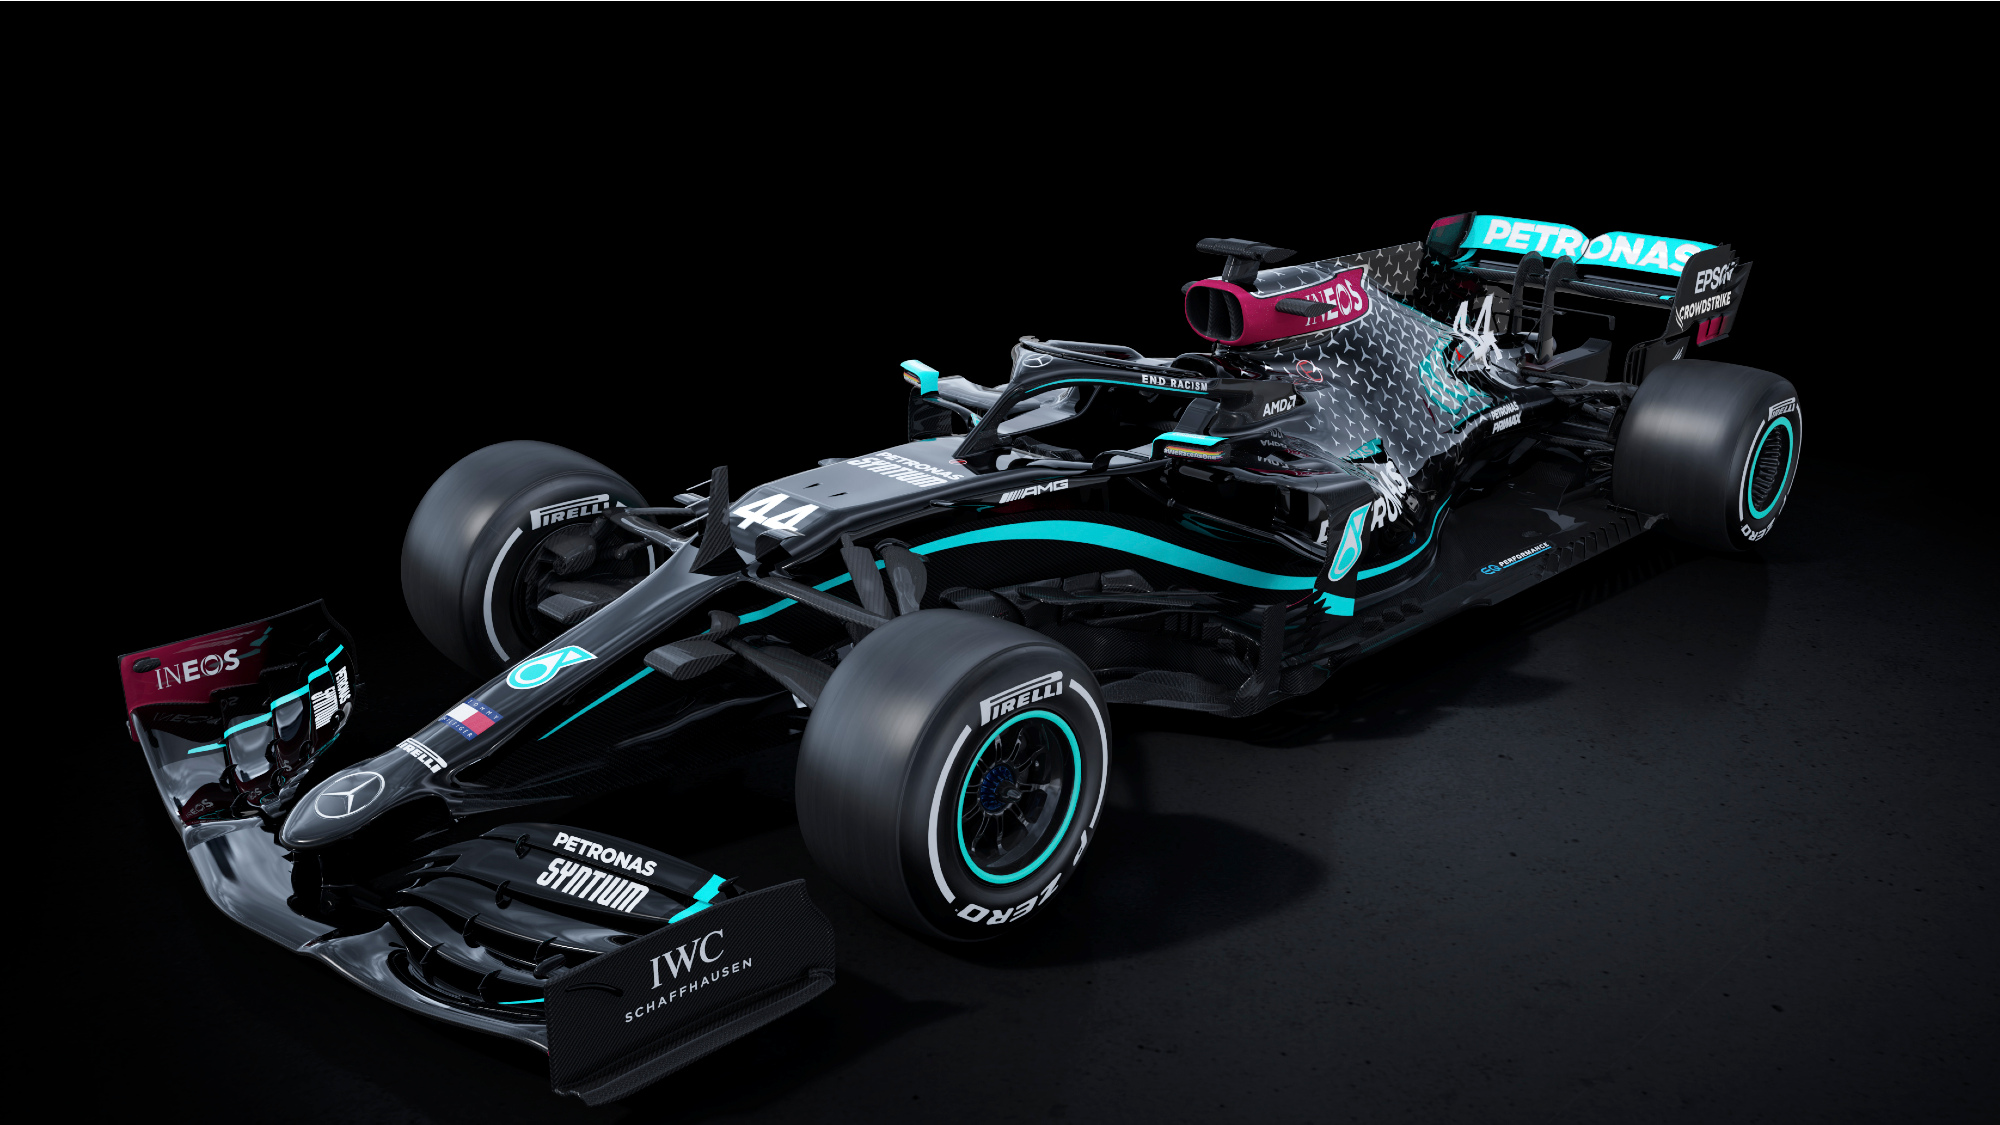 Mercedes launches black livery for 2020 F1 season